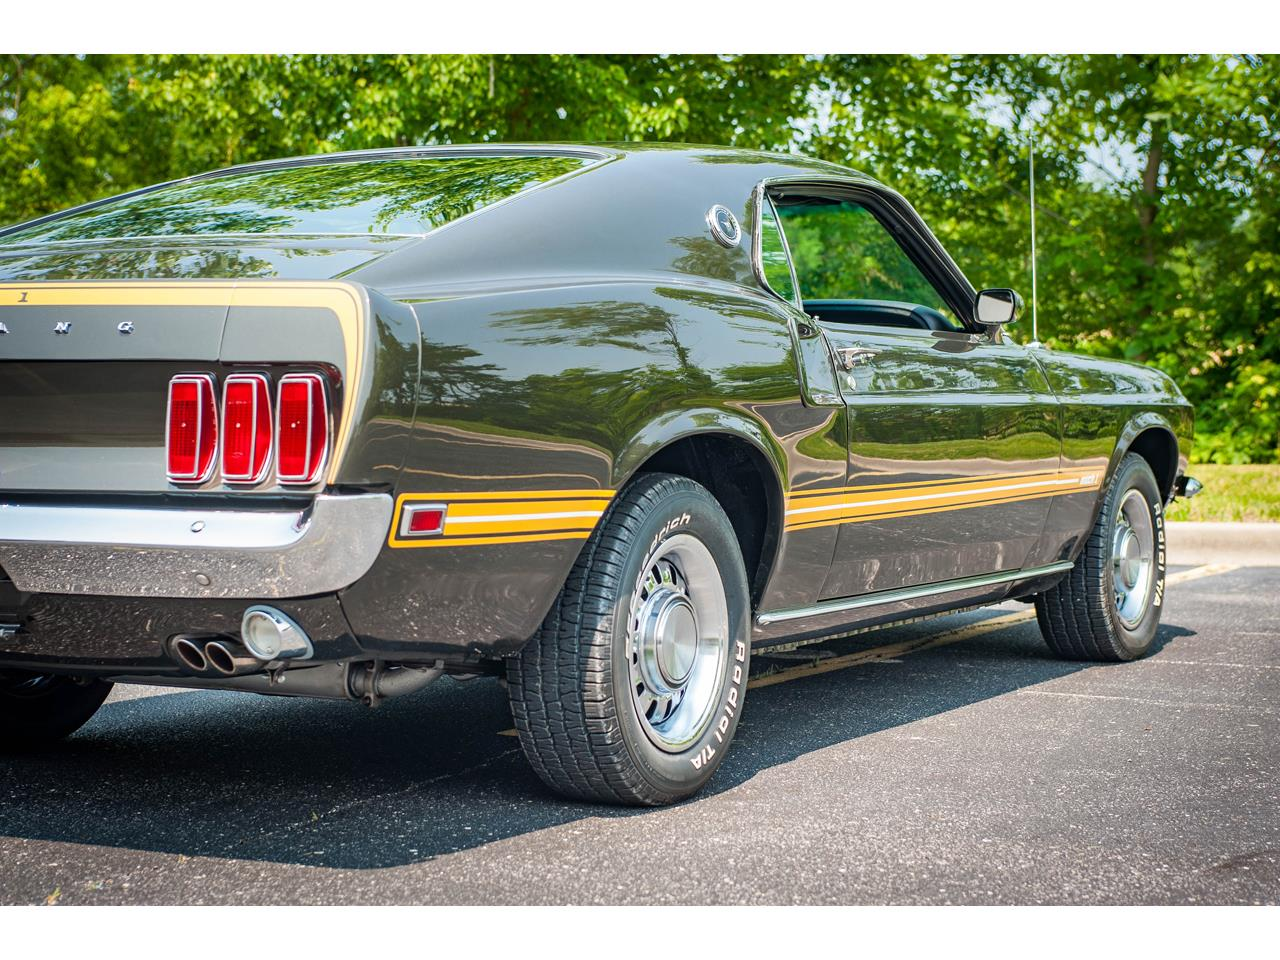 Large Picture of Classic 1969 Ford Mustang located in Illinois Offered by Gateway Classic Cars - St. Louis - QBA2